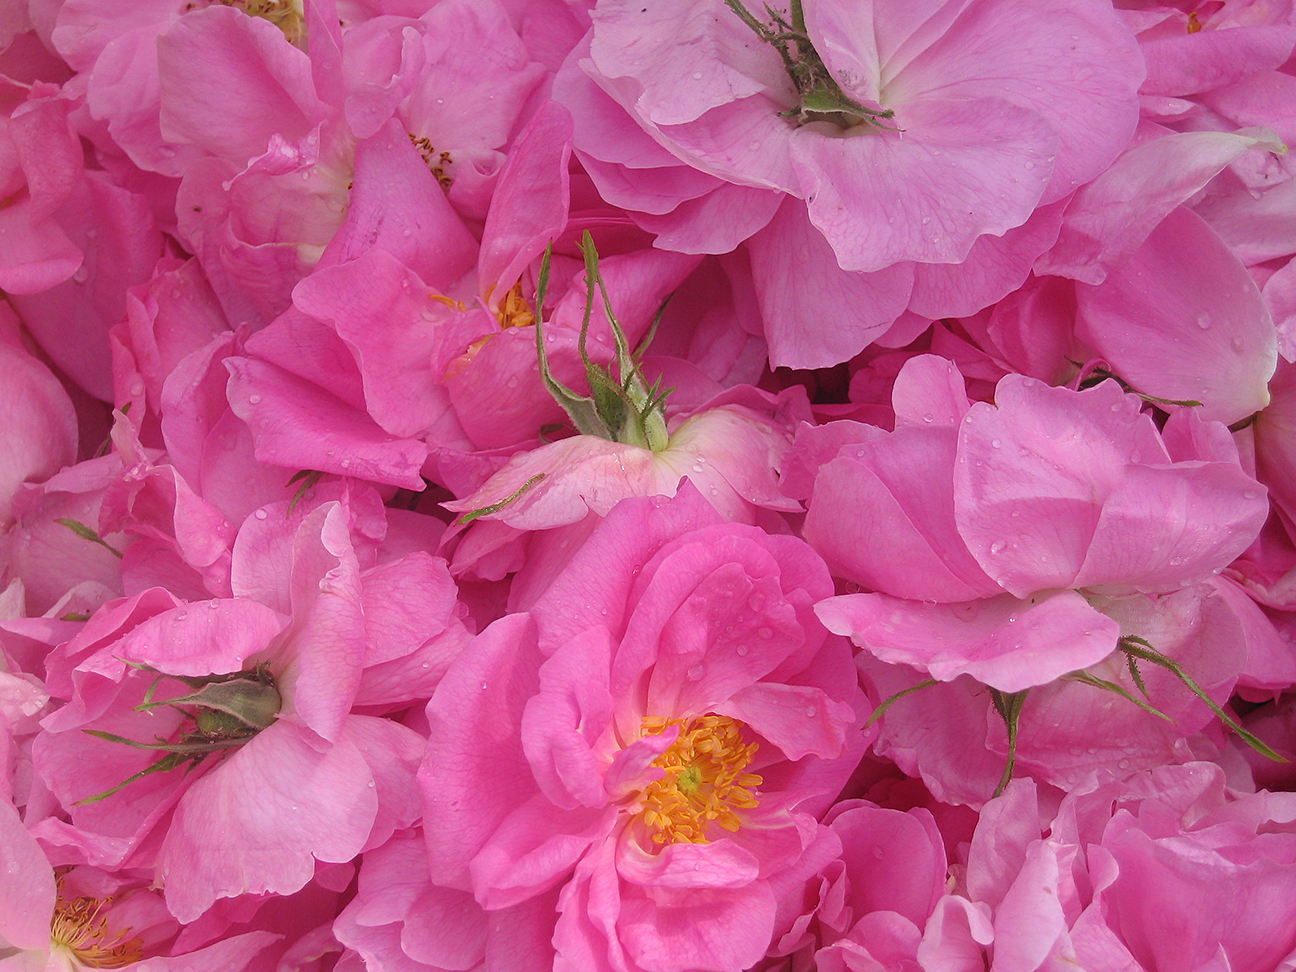 Damascena rose blossoms to make Rose Essential Oil and Water